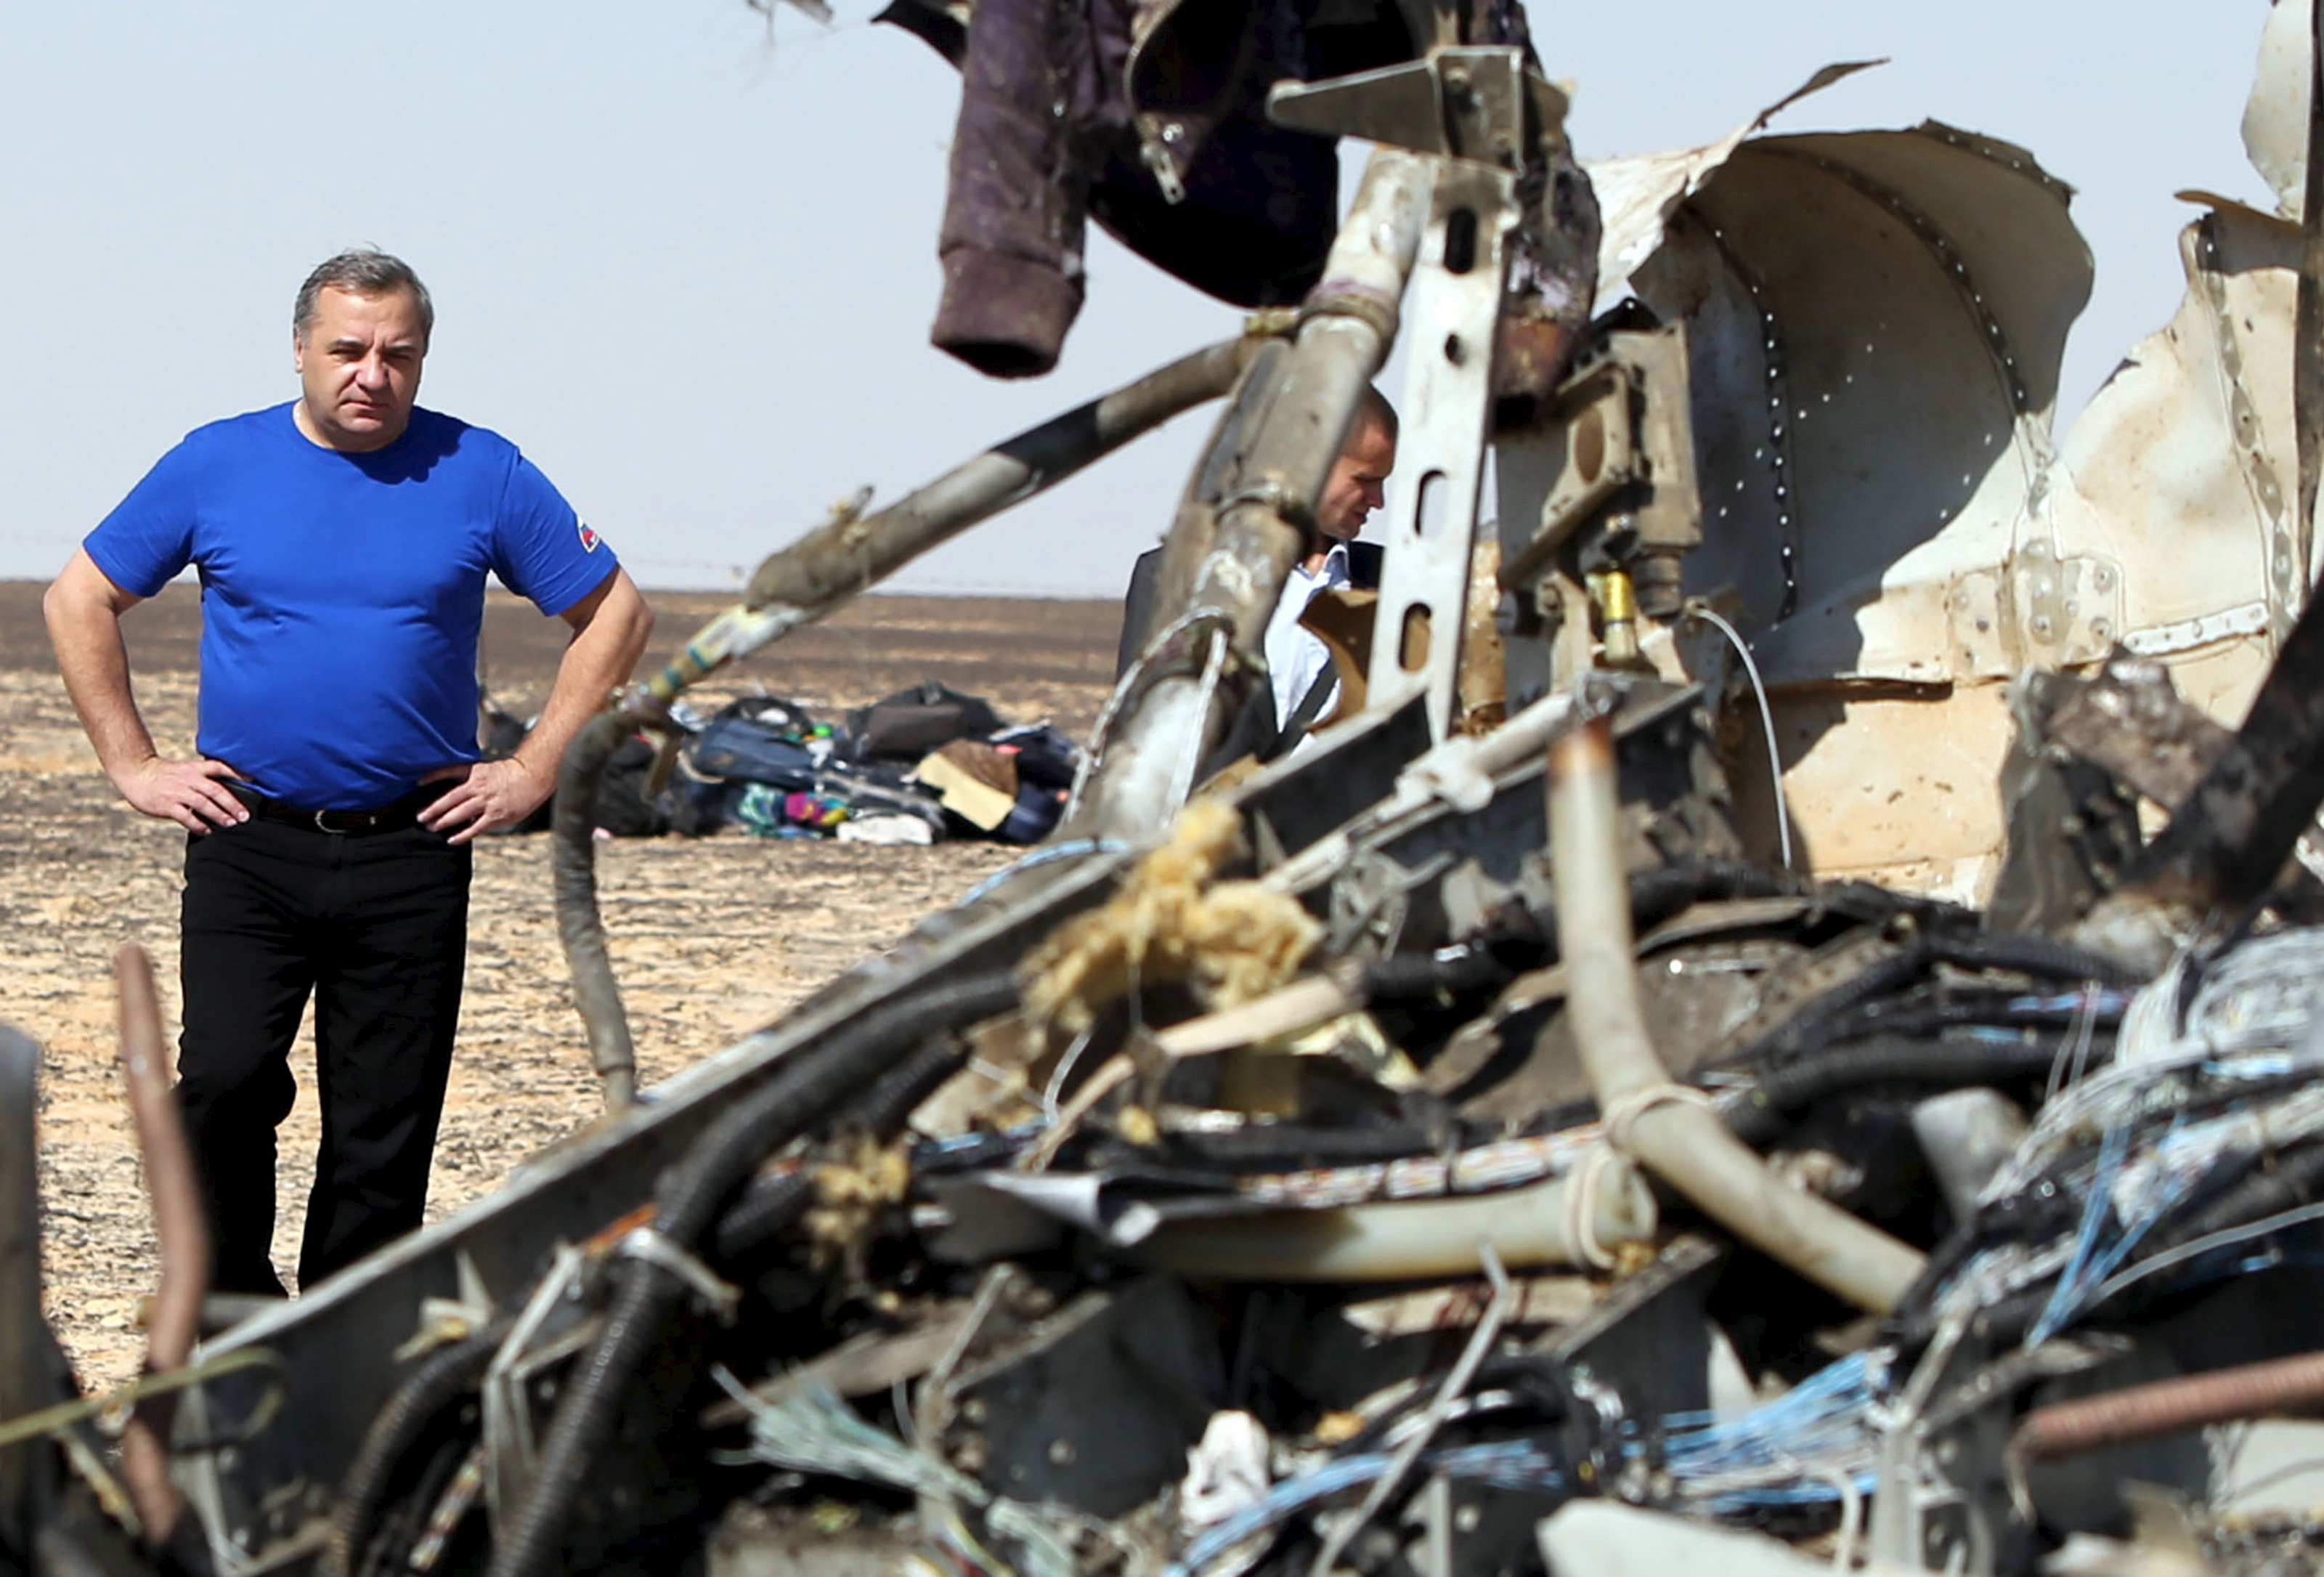 Russian Emergencies Minister Vladimir Puchkov looks at debris from a Russian airliner at its crash site at the Hassana area in Arish city, north Egypt, November 1, 2015. Russia has grounded Airbus A321 jets flown by the Kogalymavia airline, Interfax news agency reported on Sunday, after one of its fleet crashed in Egypt's Sinai Peninsula, killing all 224 people on board. REUTERS/Mohamed Abd El Ghany - RTX1U8KZ